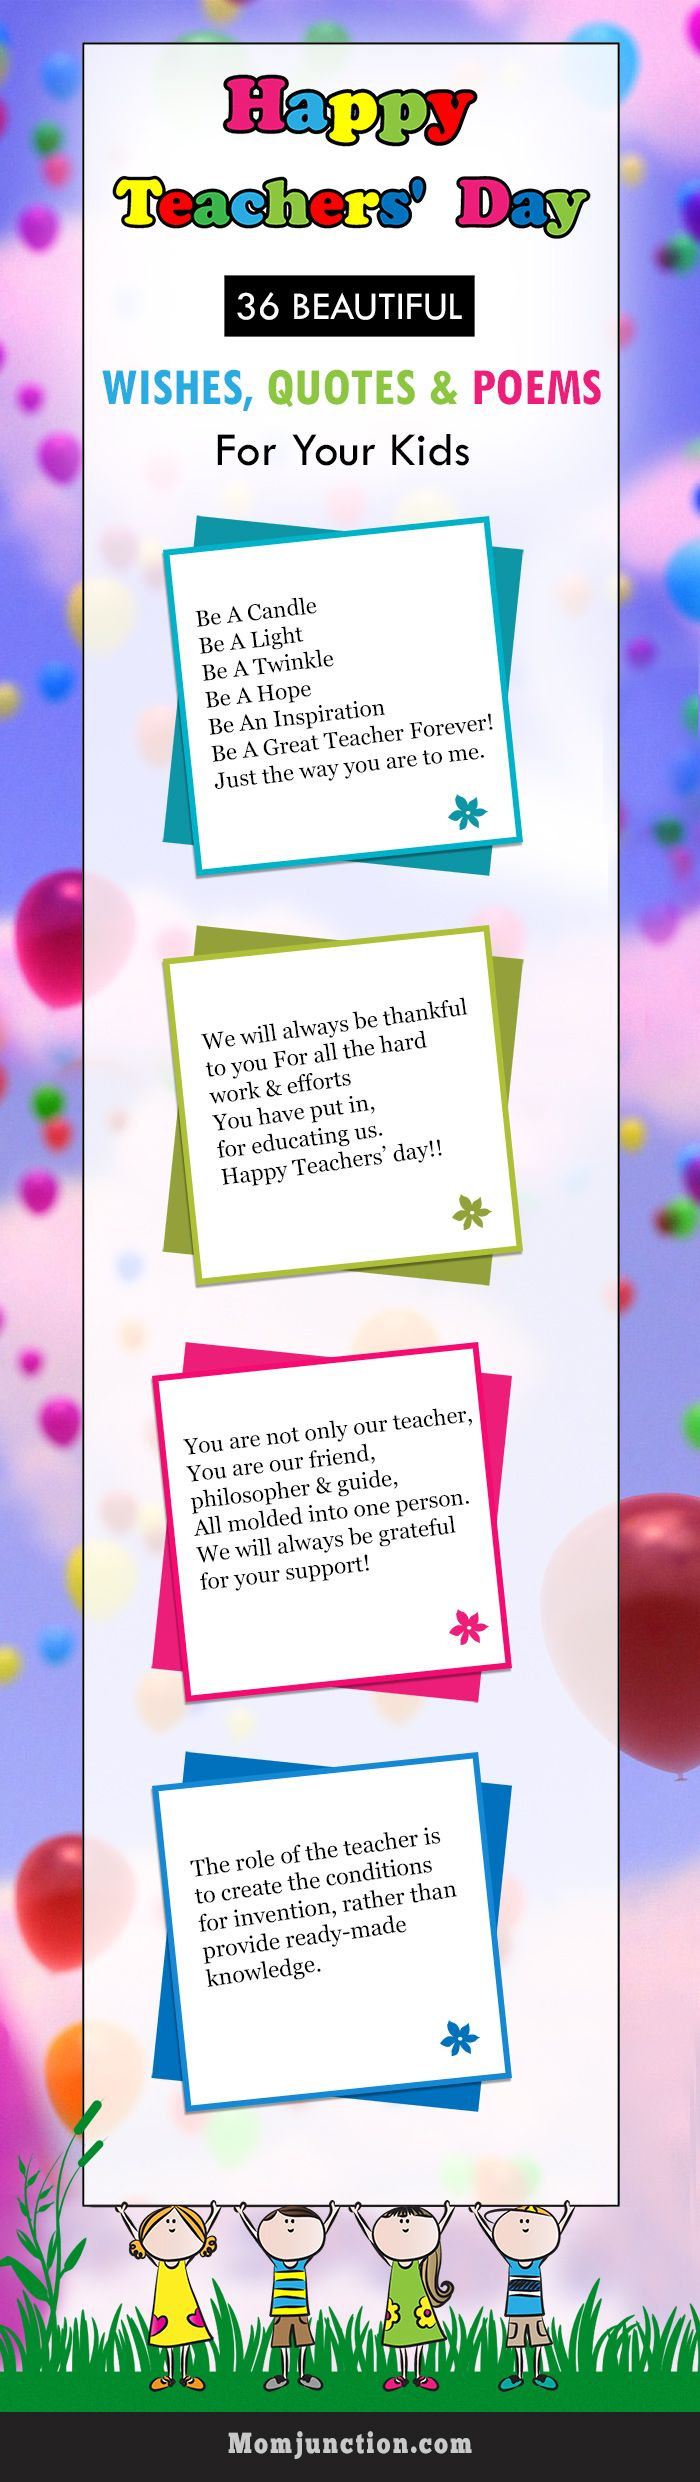 36 Beautiful Teacher's Day Wishes, Quotes & Poems For Your Kids